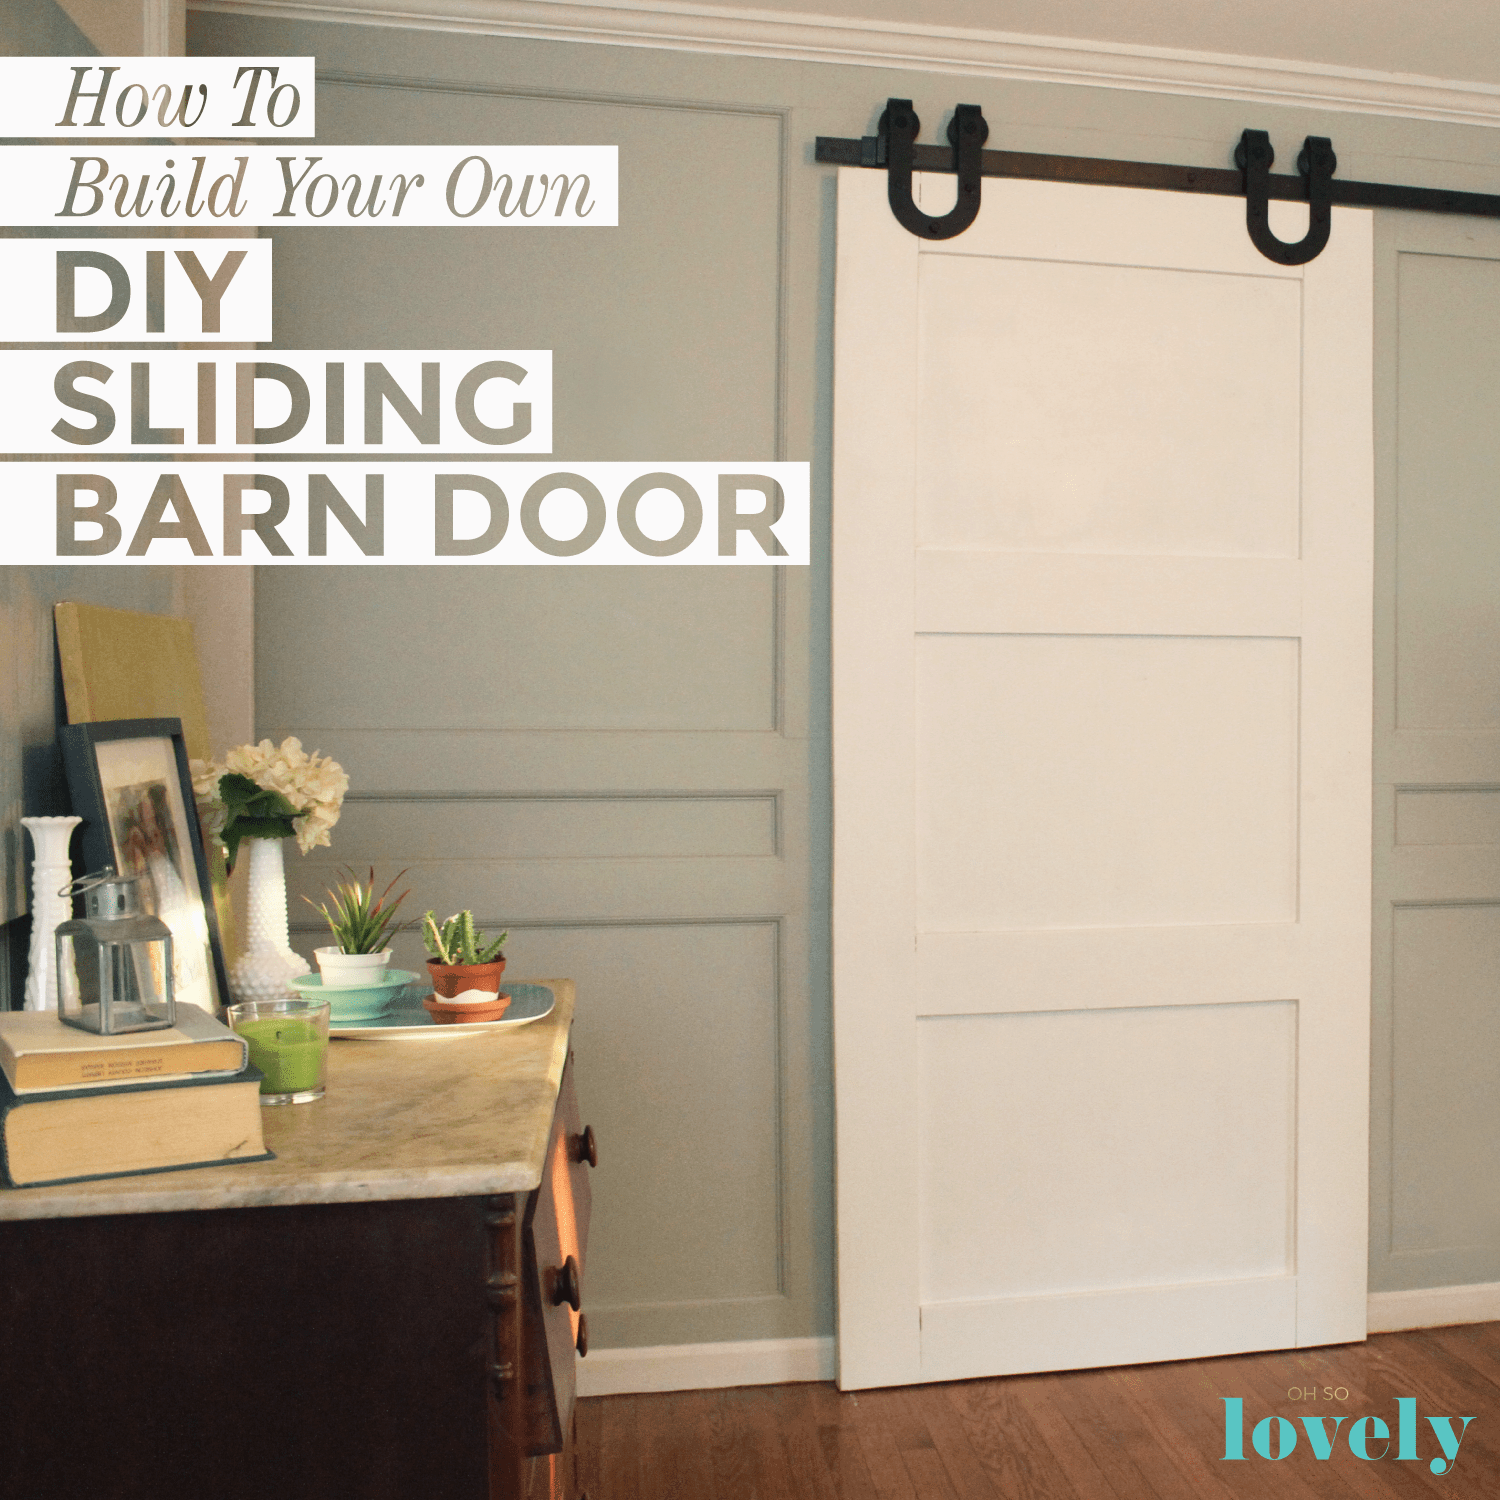 How To Build Your Own DIY Sliding Barn Door   A Compete Tutoria